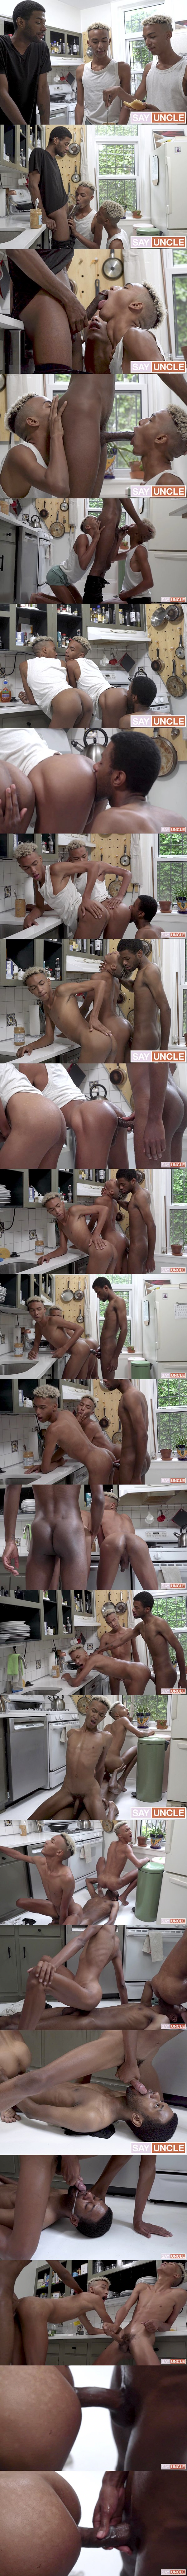 Big-dicked black stud Eric Ford barebacks twins Dante and Diego before Eric gets a facial and creampies one of twins in Snack Time at Brothercrush 01